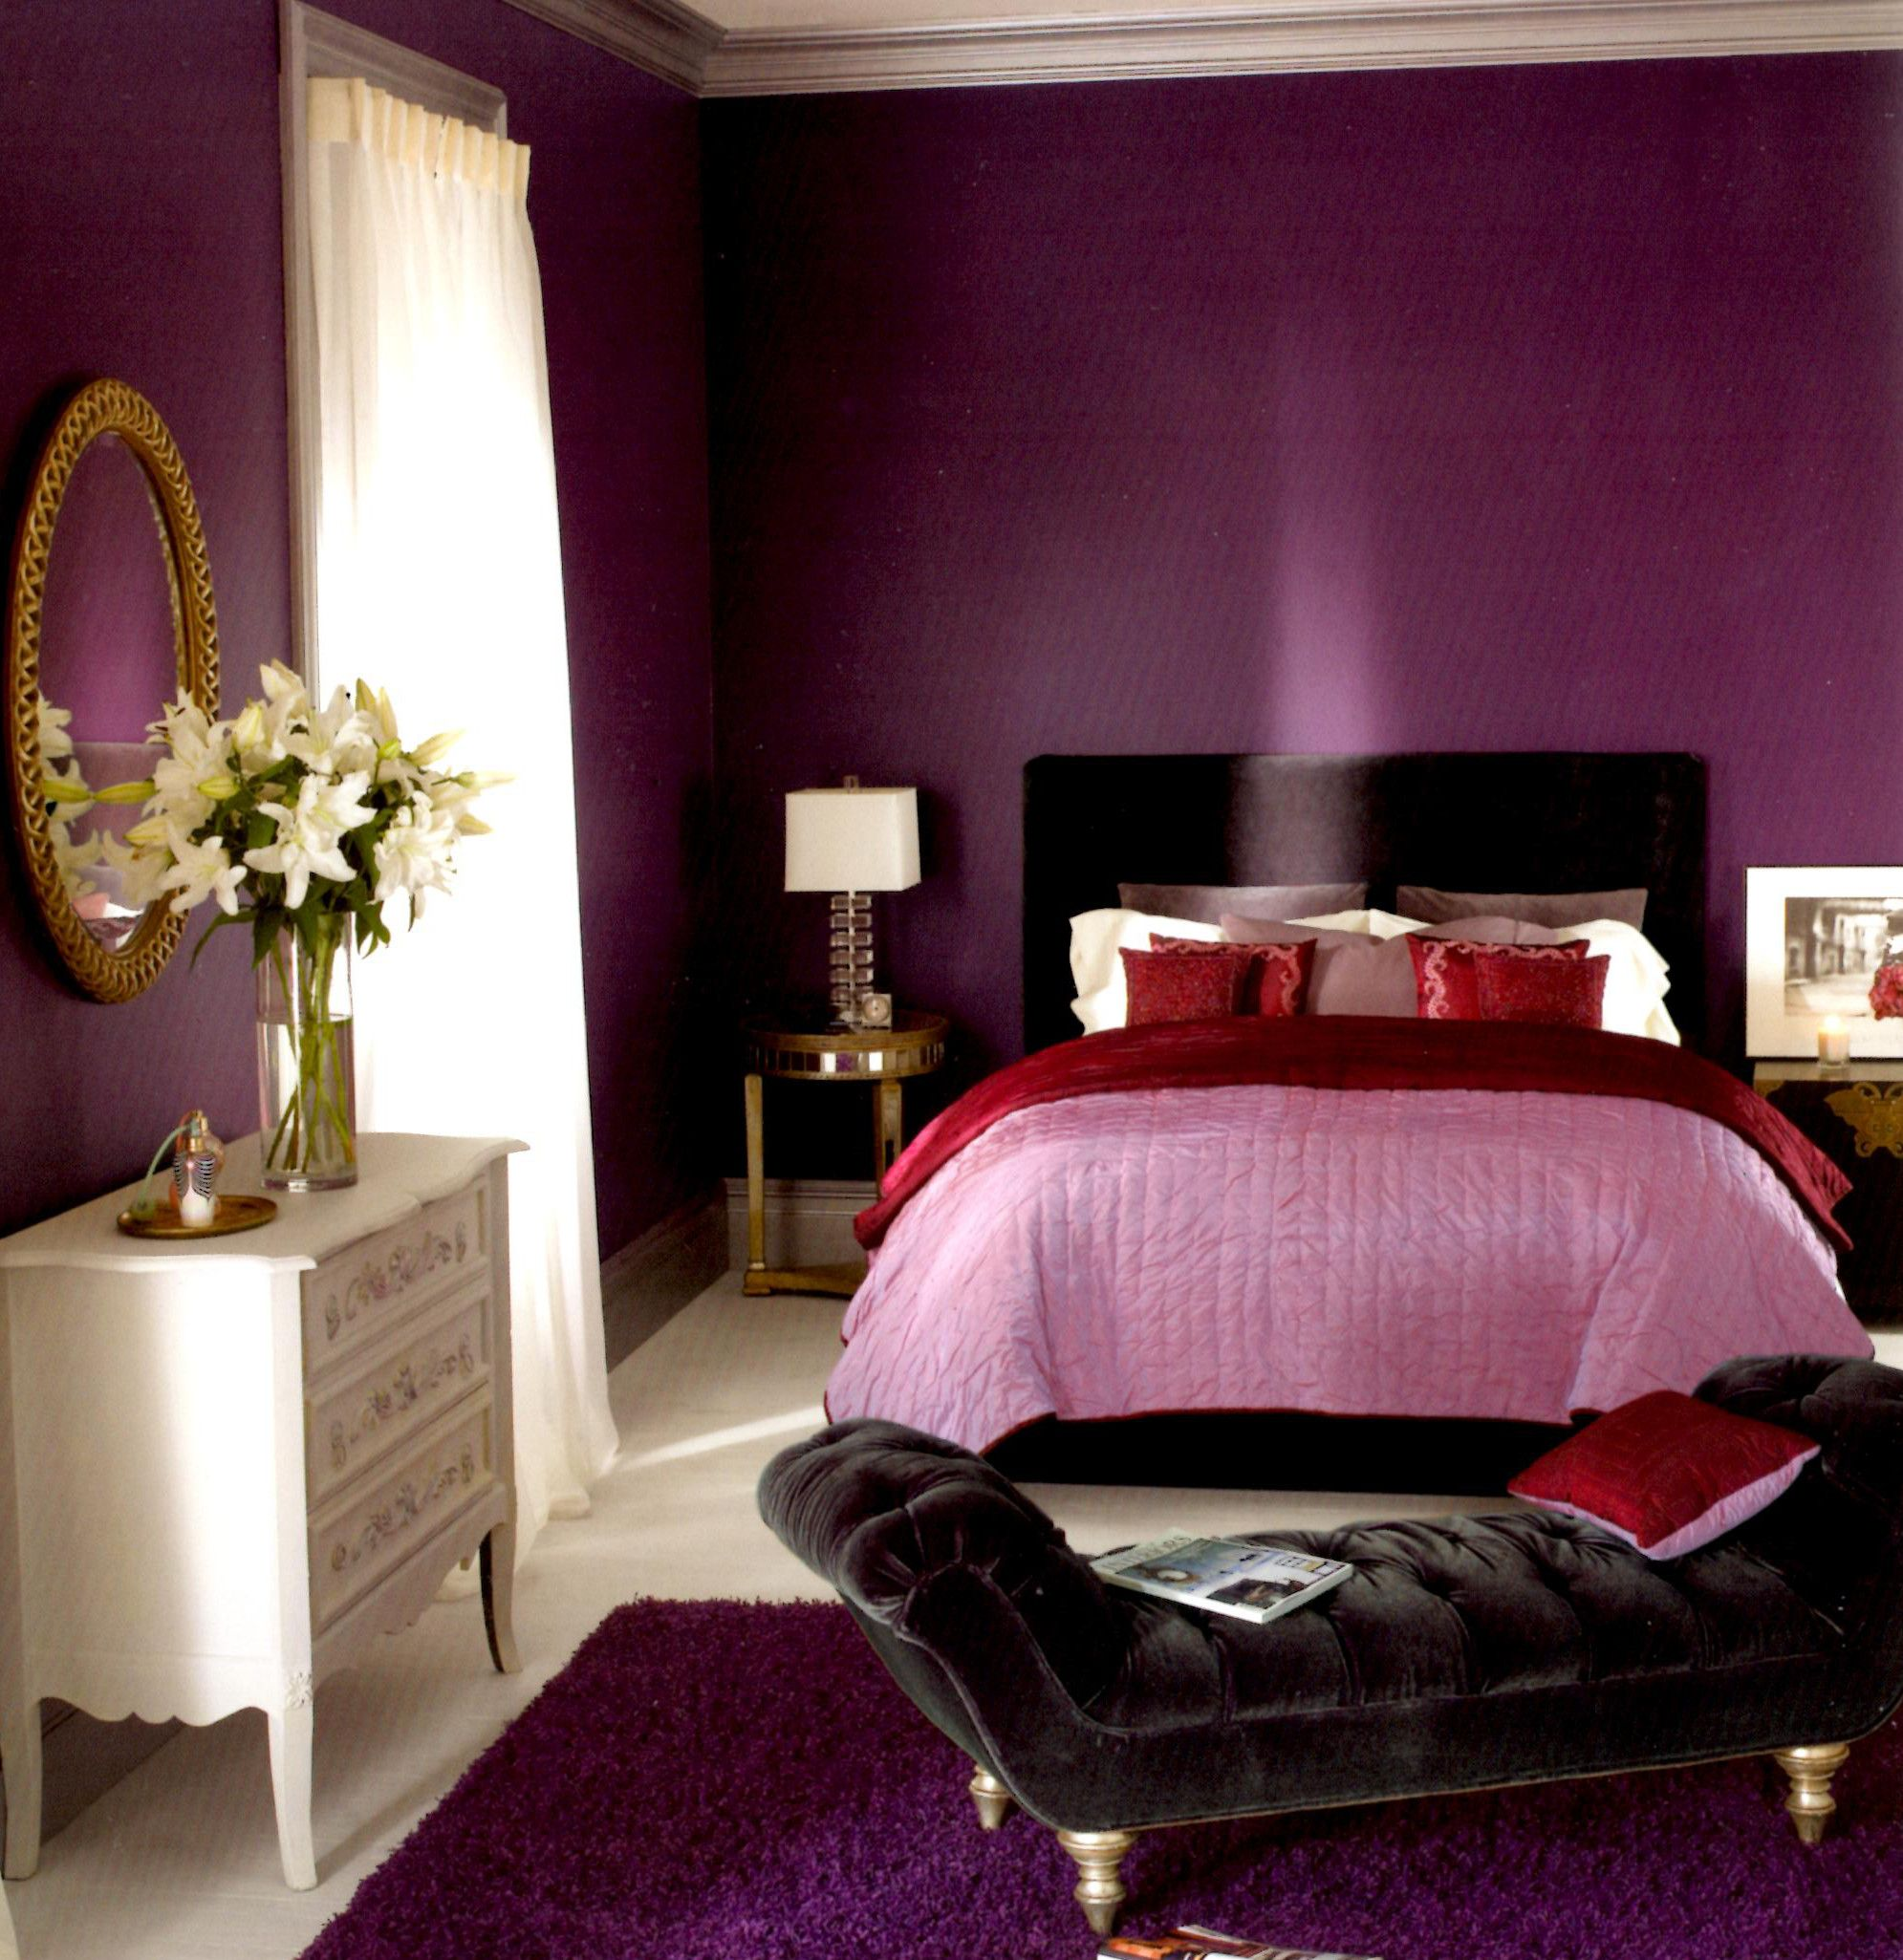 Room color ideas for bedroom - Remarkable Purple Wall Paneling Colors As Smart Bedroom Paint Ideas In Teenage Bedroom Decor Also White